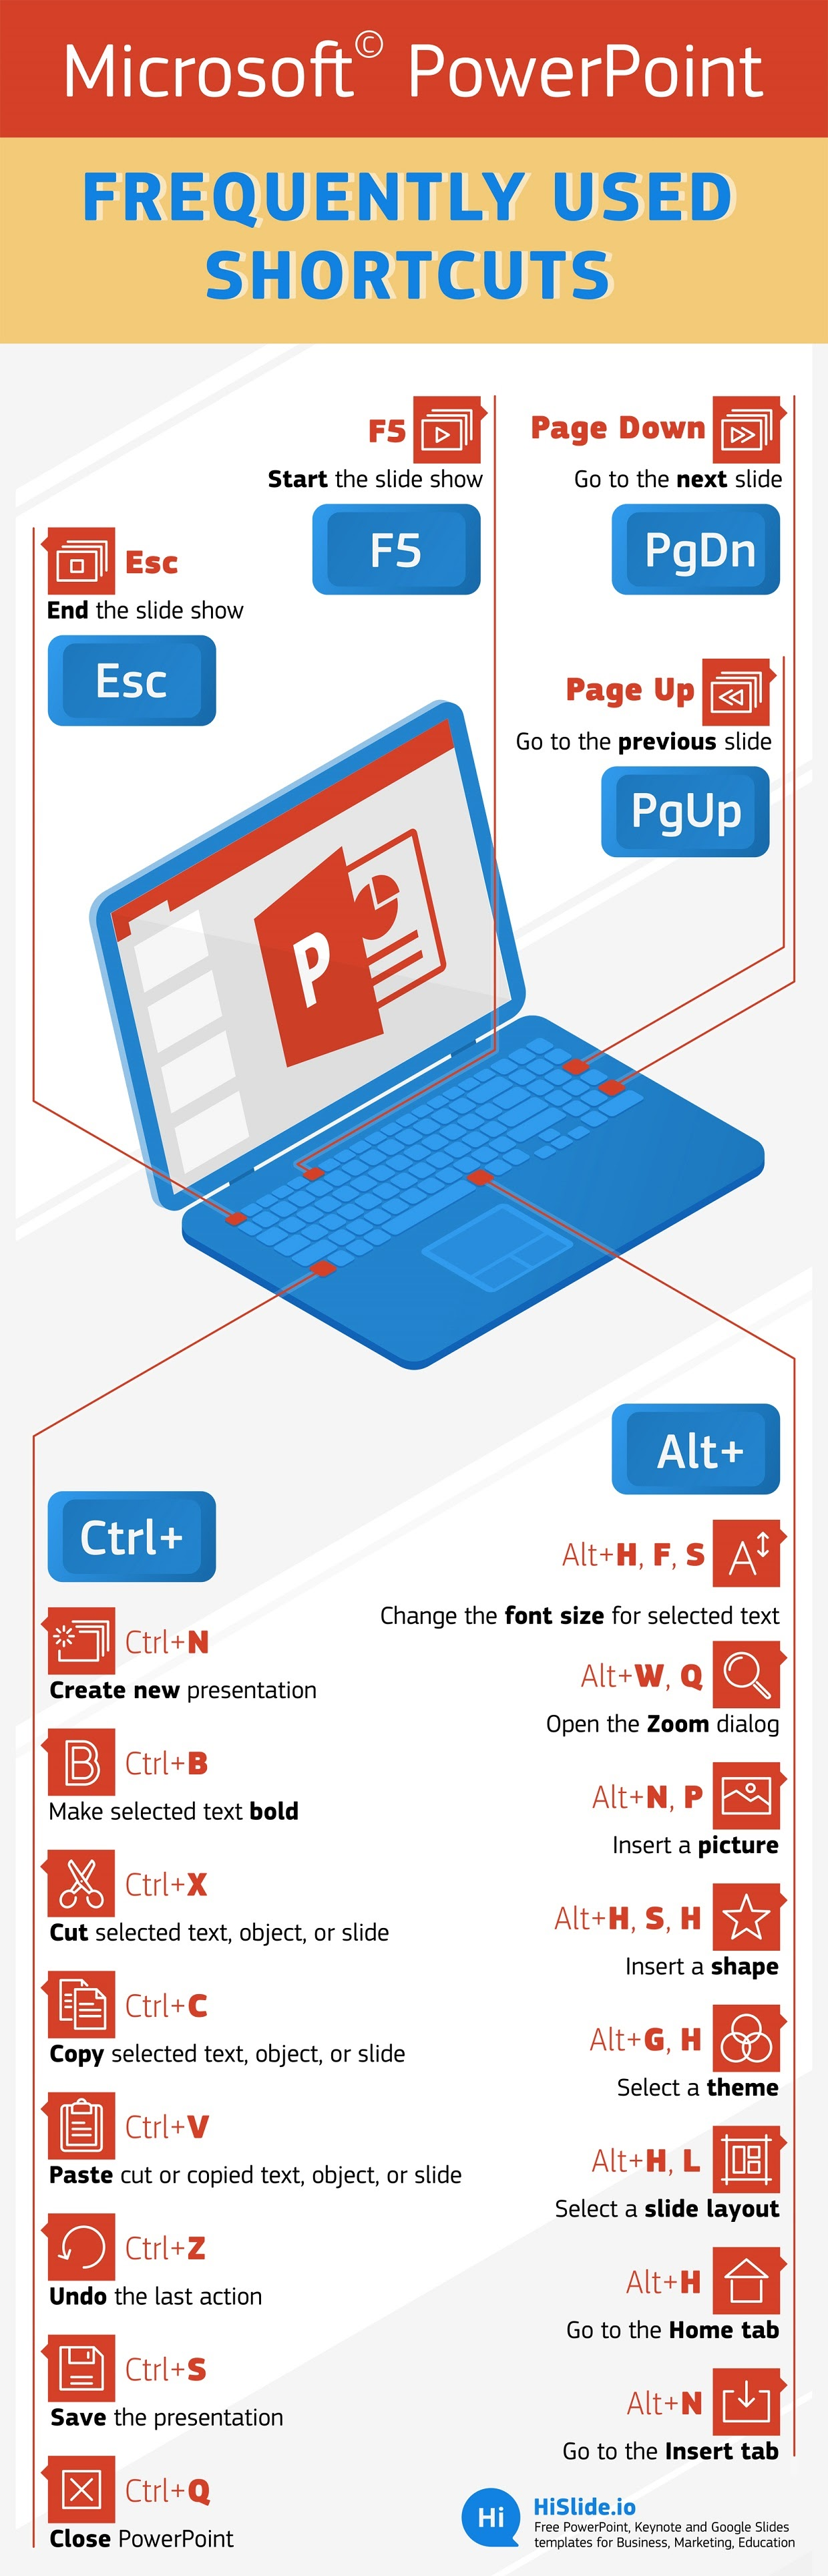 3 Reasons to Use PowerPoint Shortcuts while Creating Digital Projects #infographic #Project #PowerPoint